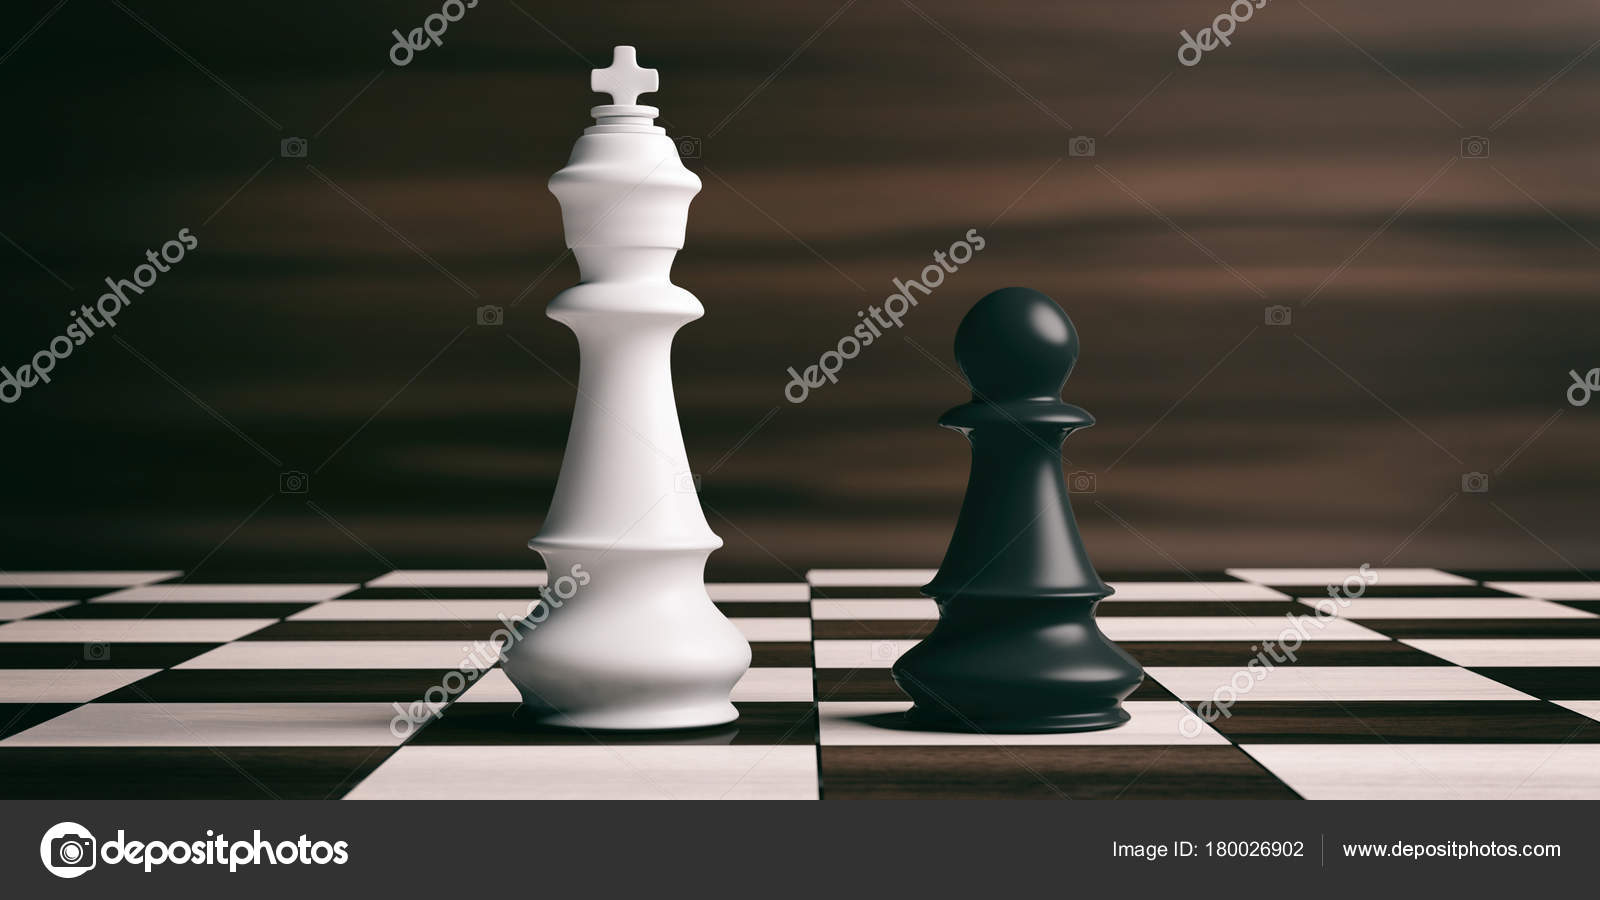 White Chess King And Black Pawn On A Chessboard 3d Illustration